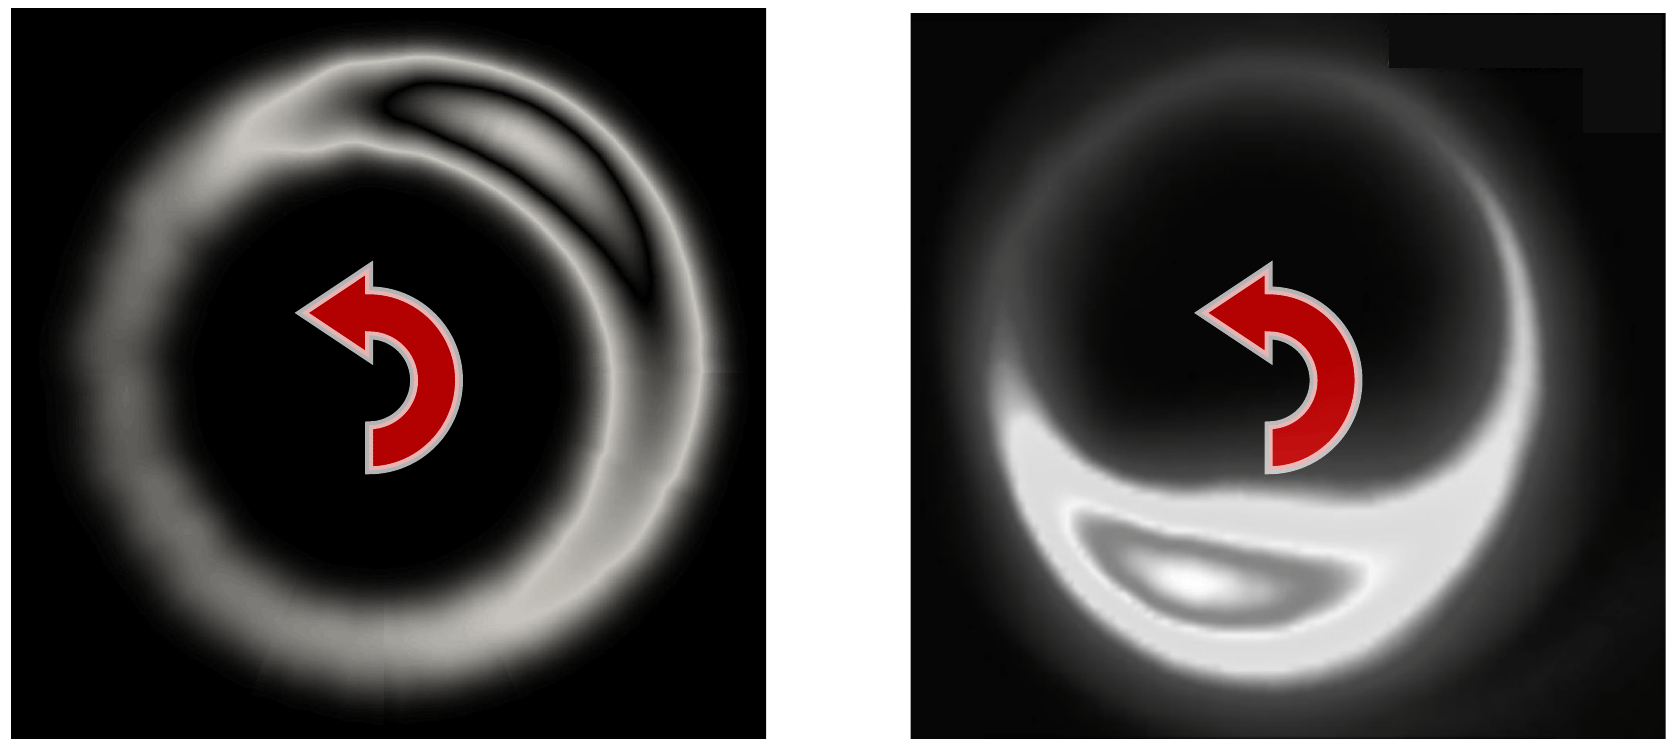 Spokes: Highly ionized regions due to local plasma instabilities. Comparison of simulation (left) and experiment (right).